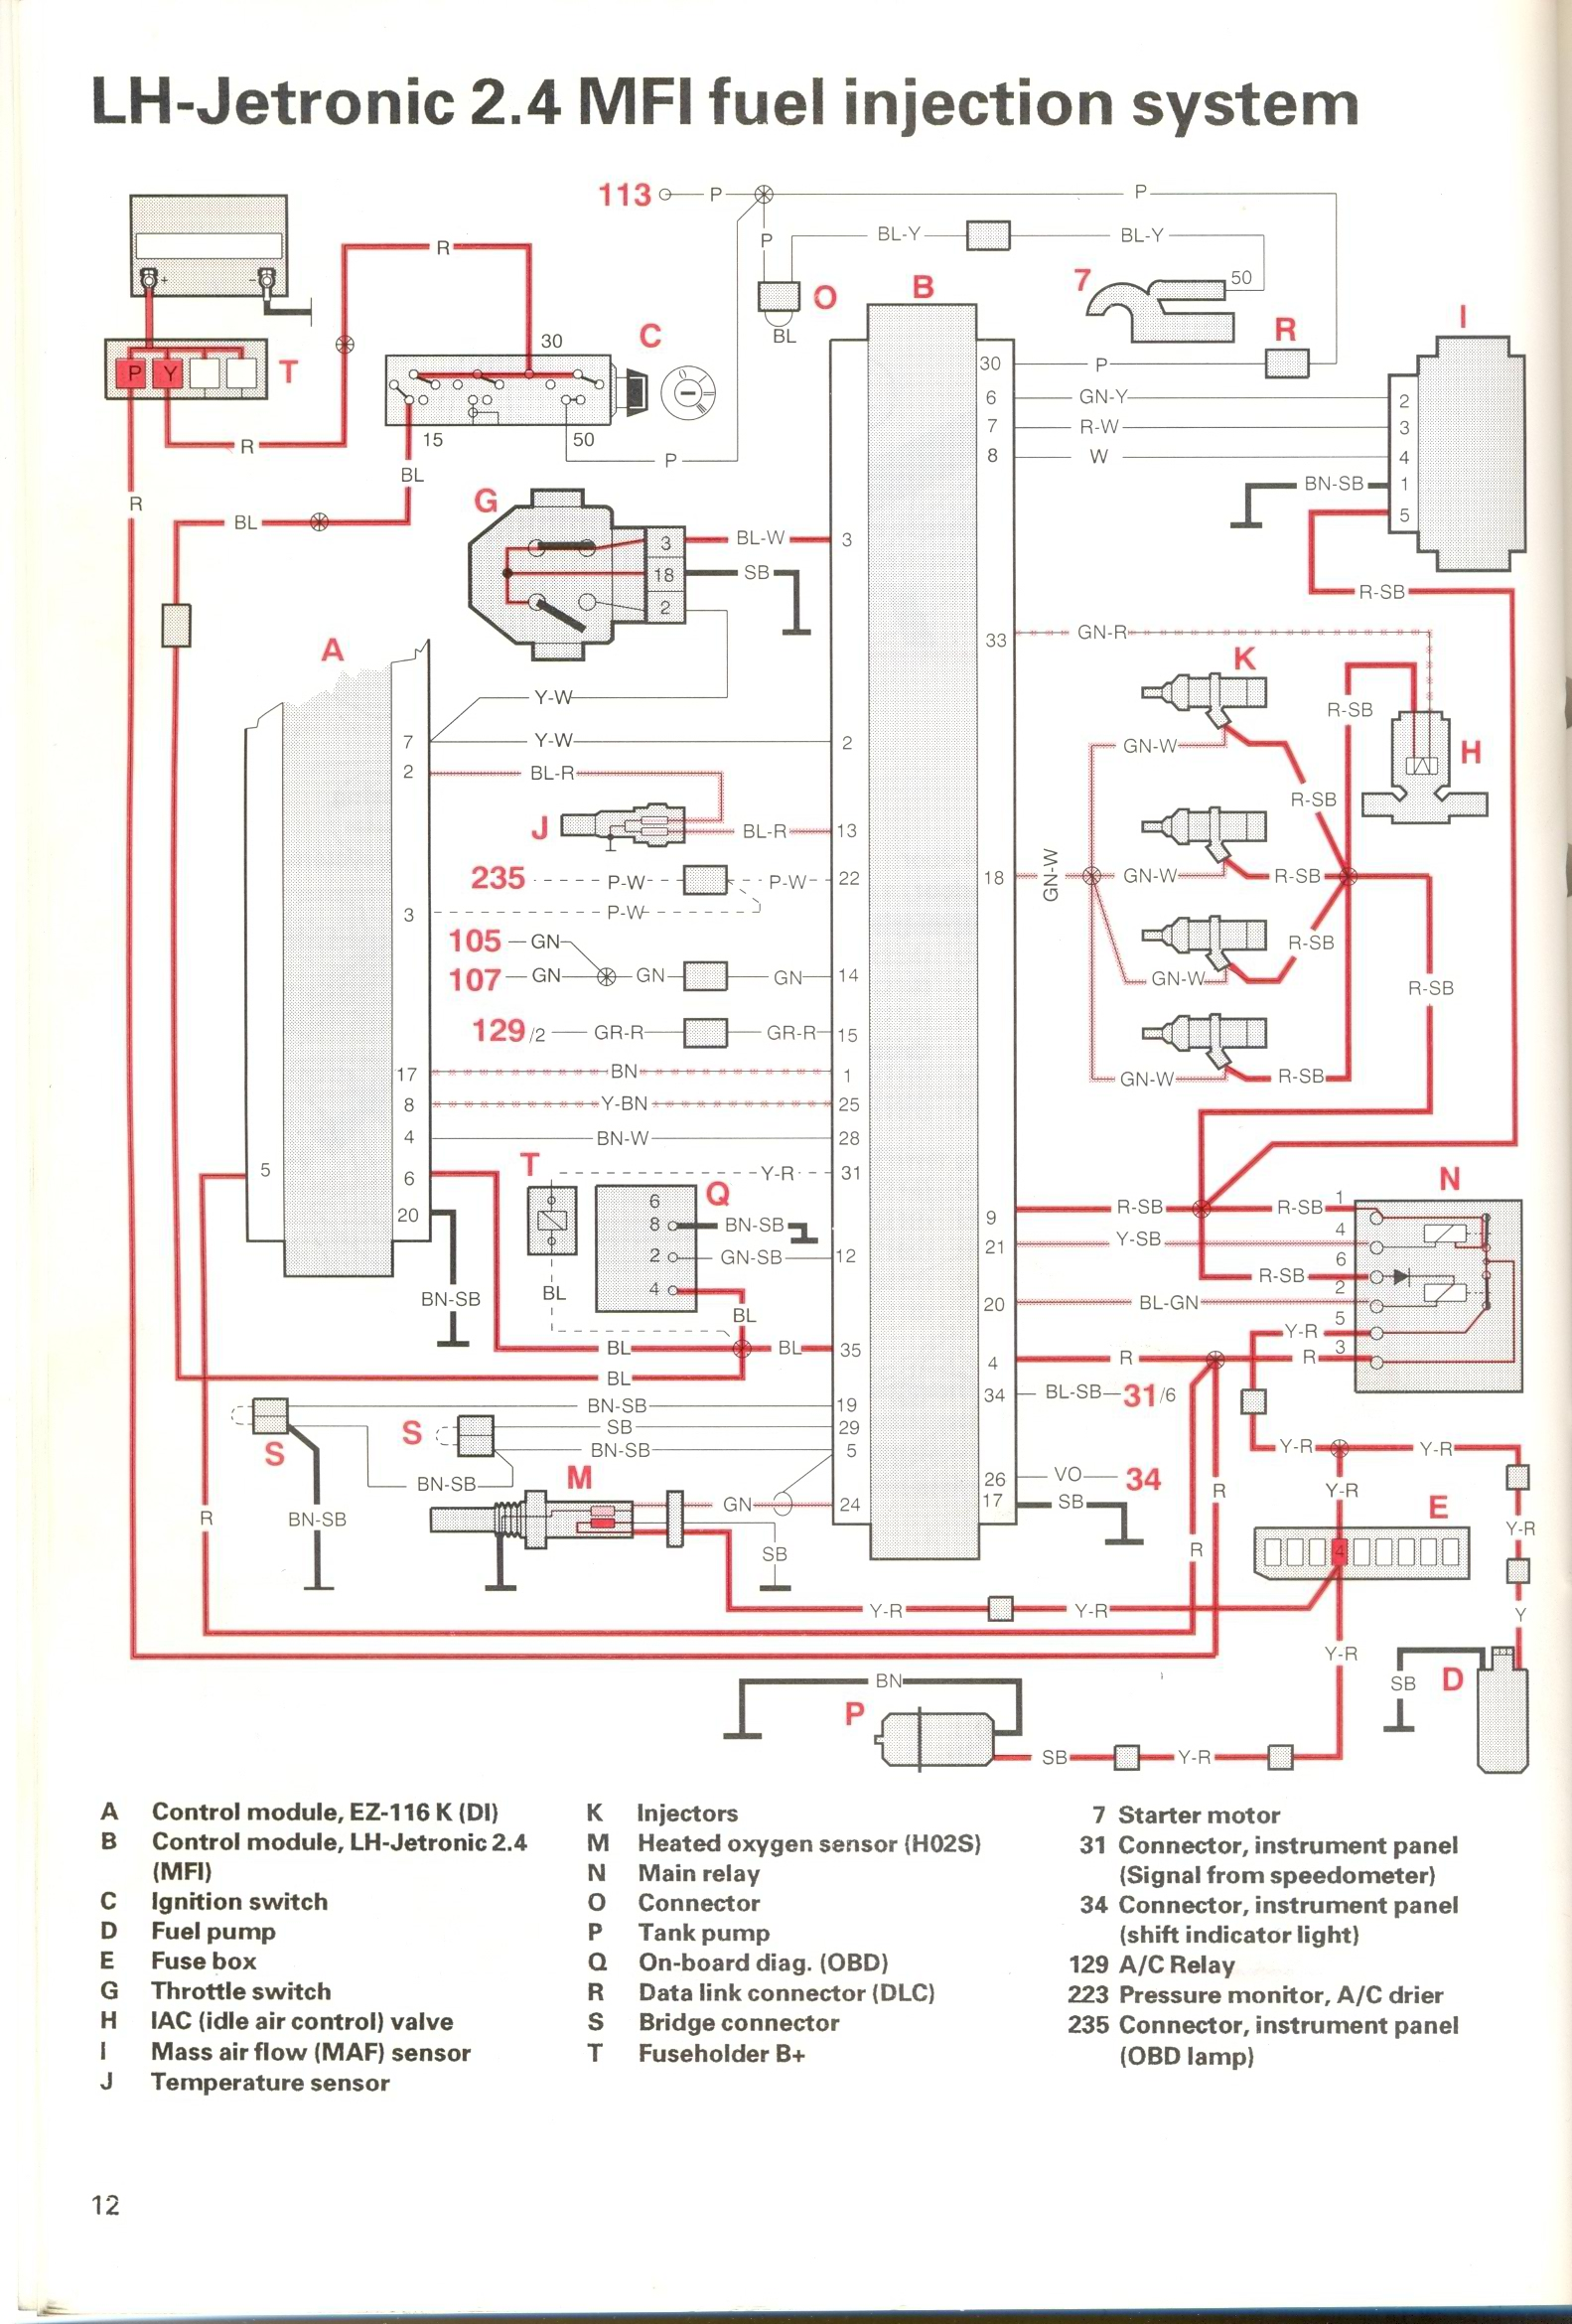 Volvo Lh2 4 Wiring Diagram Change Your Idea With Penta Diagrams Old Bricks And Stuff Page 2 Turbobricks Forums Rh Com 240 Fuse S80